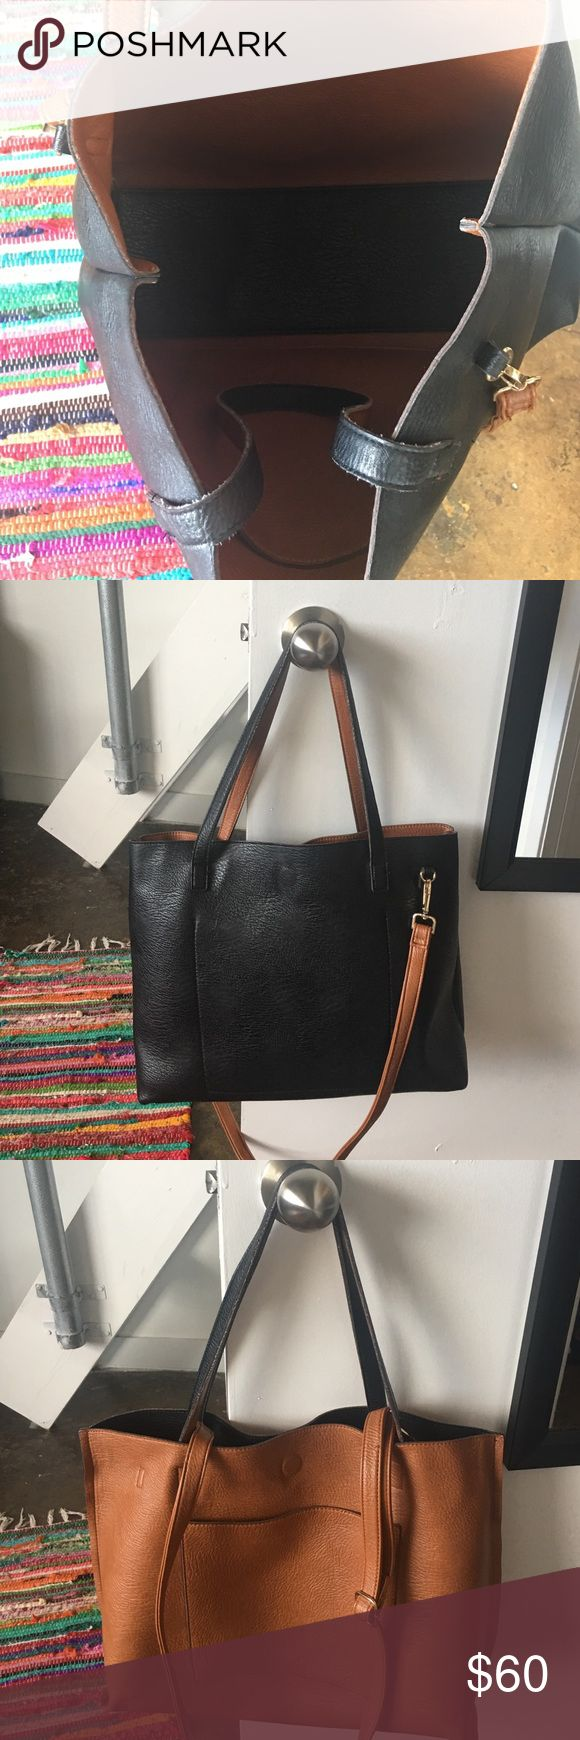 Urban outfitter purse Black or tan urban outfitter purse it comes with a removable long strap so you can carry it short or long! It is such a neat bag perfect condition just don't use anymore! Urban Outfitters Bags Crossbody Bags